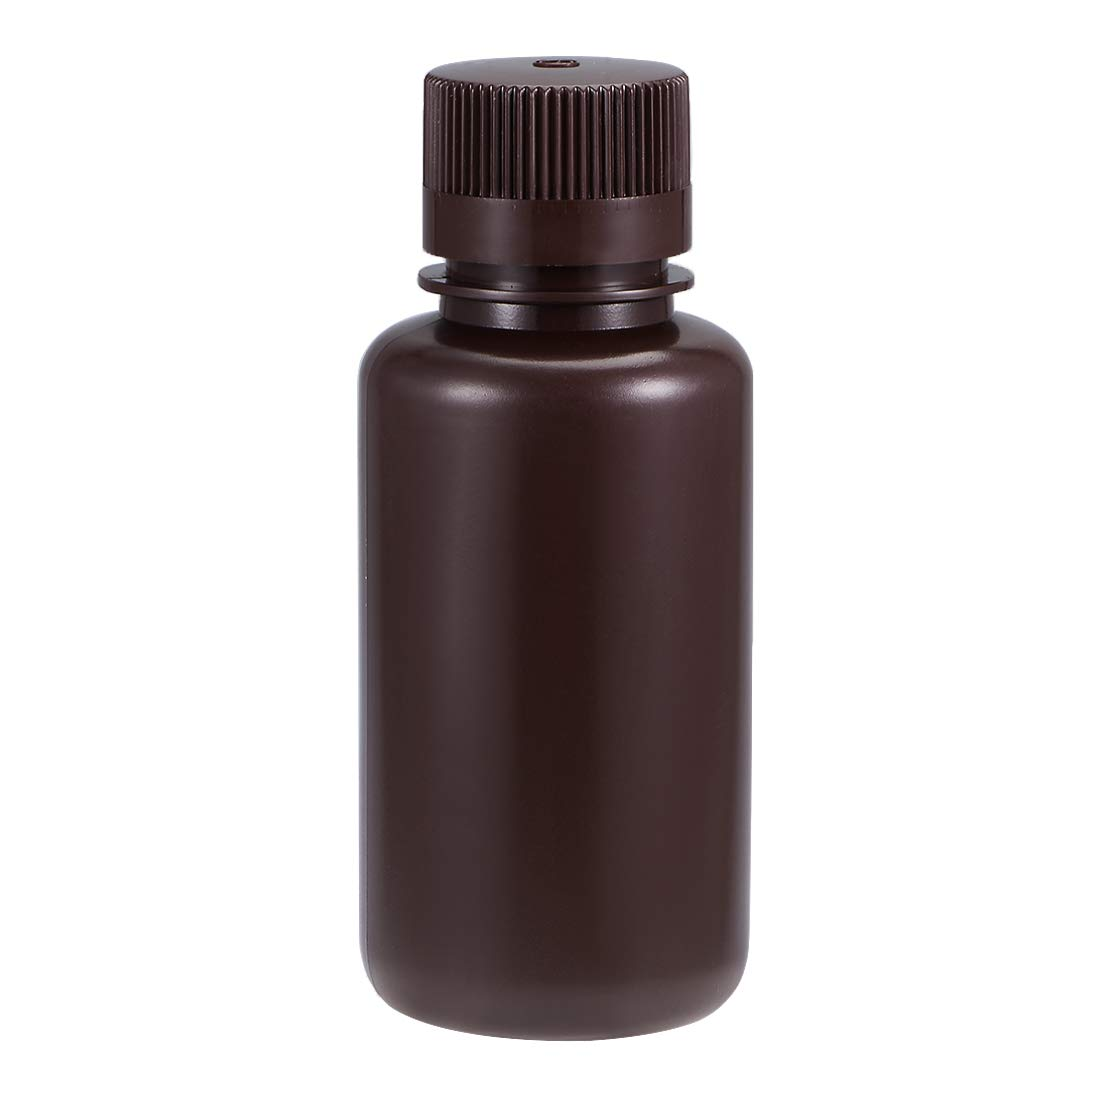 uxcell Plastic Lab Chemical Reagent Bottle 250ml/8.5oz Small Mouth Sample Sealing Liquid Storage Container Brown